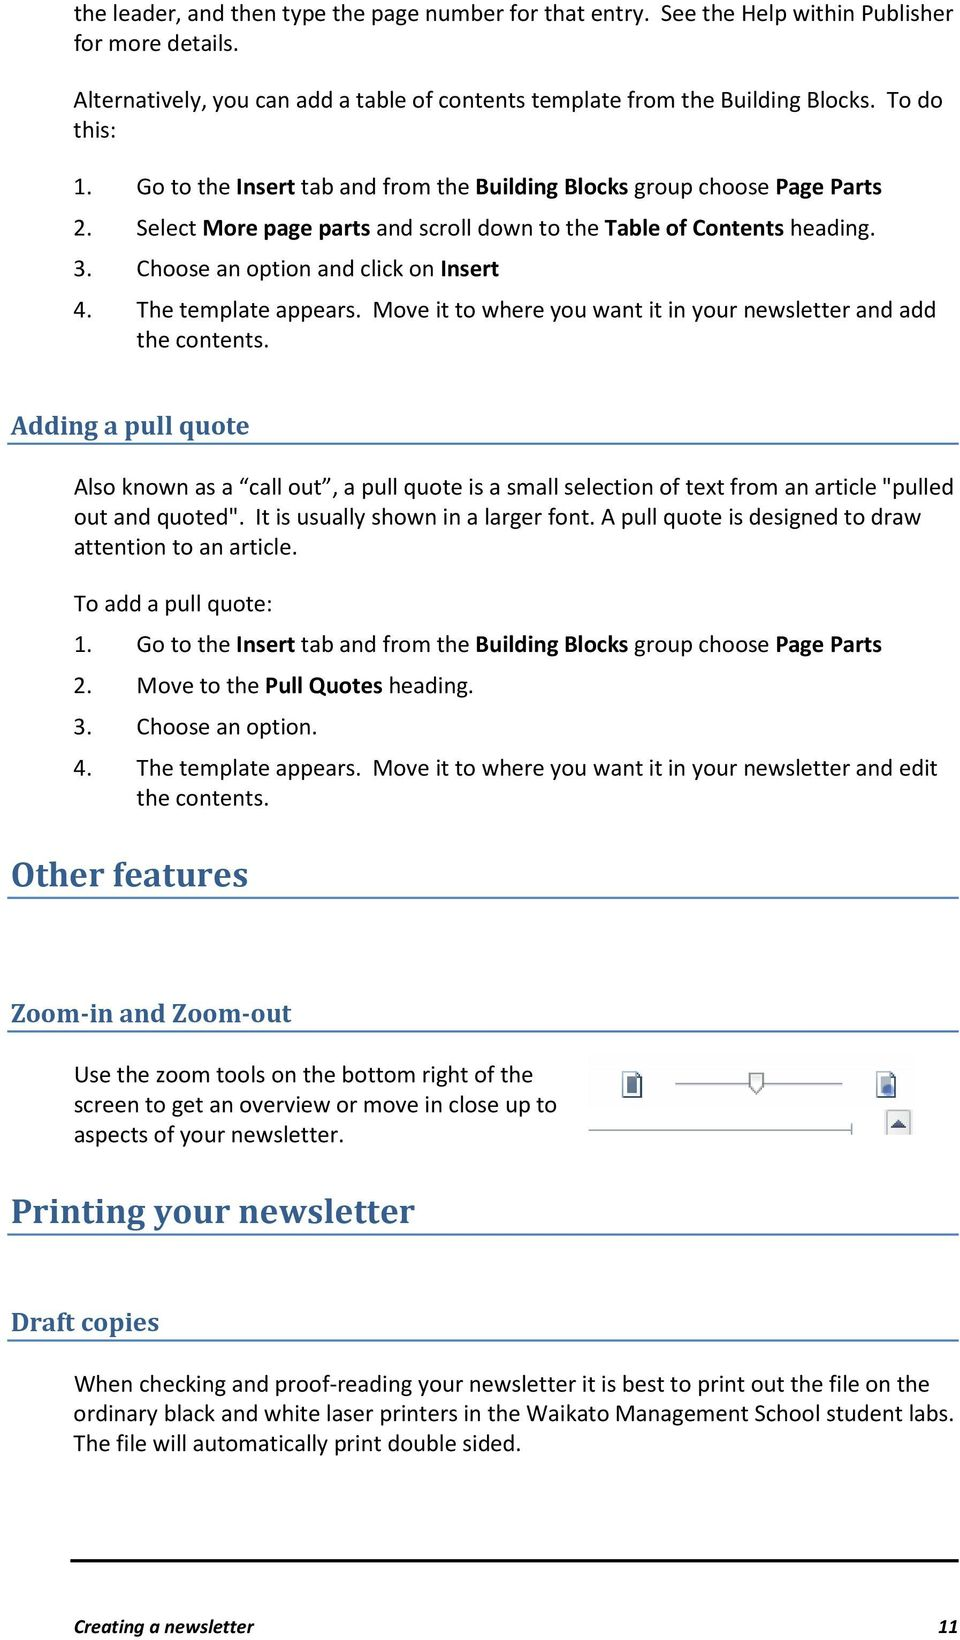 Choose an option and click on Insert 4. The template appears. Move it to where you want it in your newsletter and add the contents.